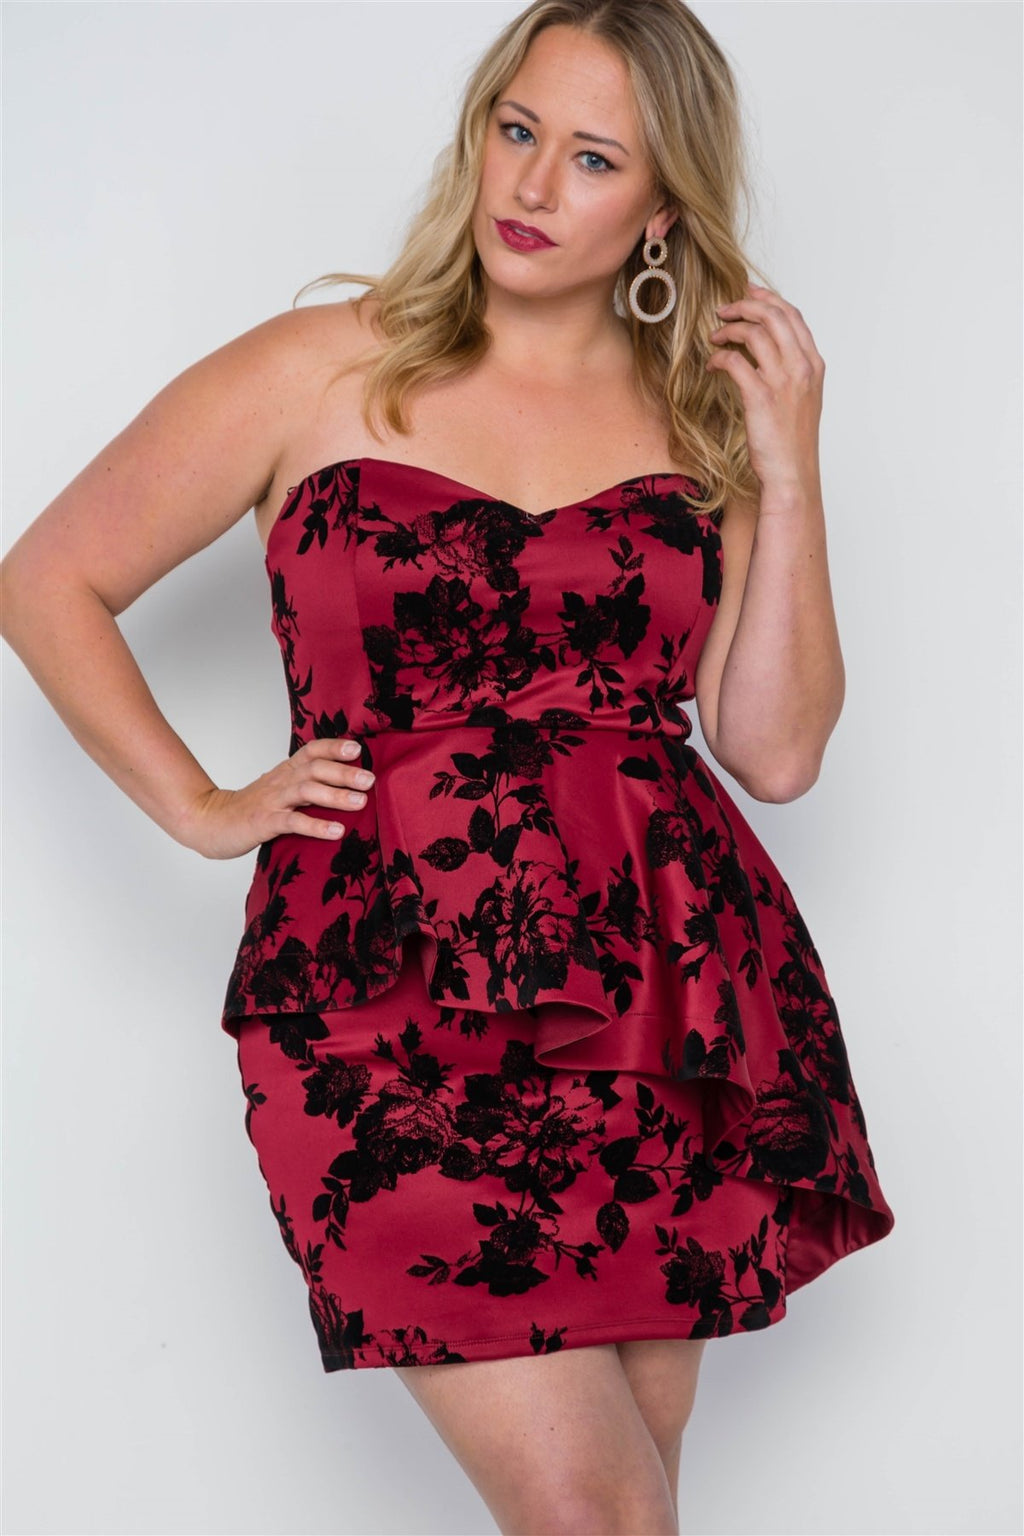 1XL Strapless Floral Sweetheart Mini Dress